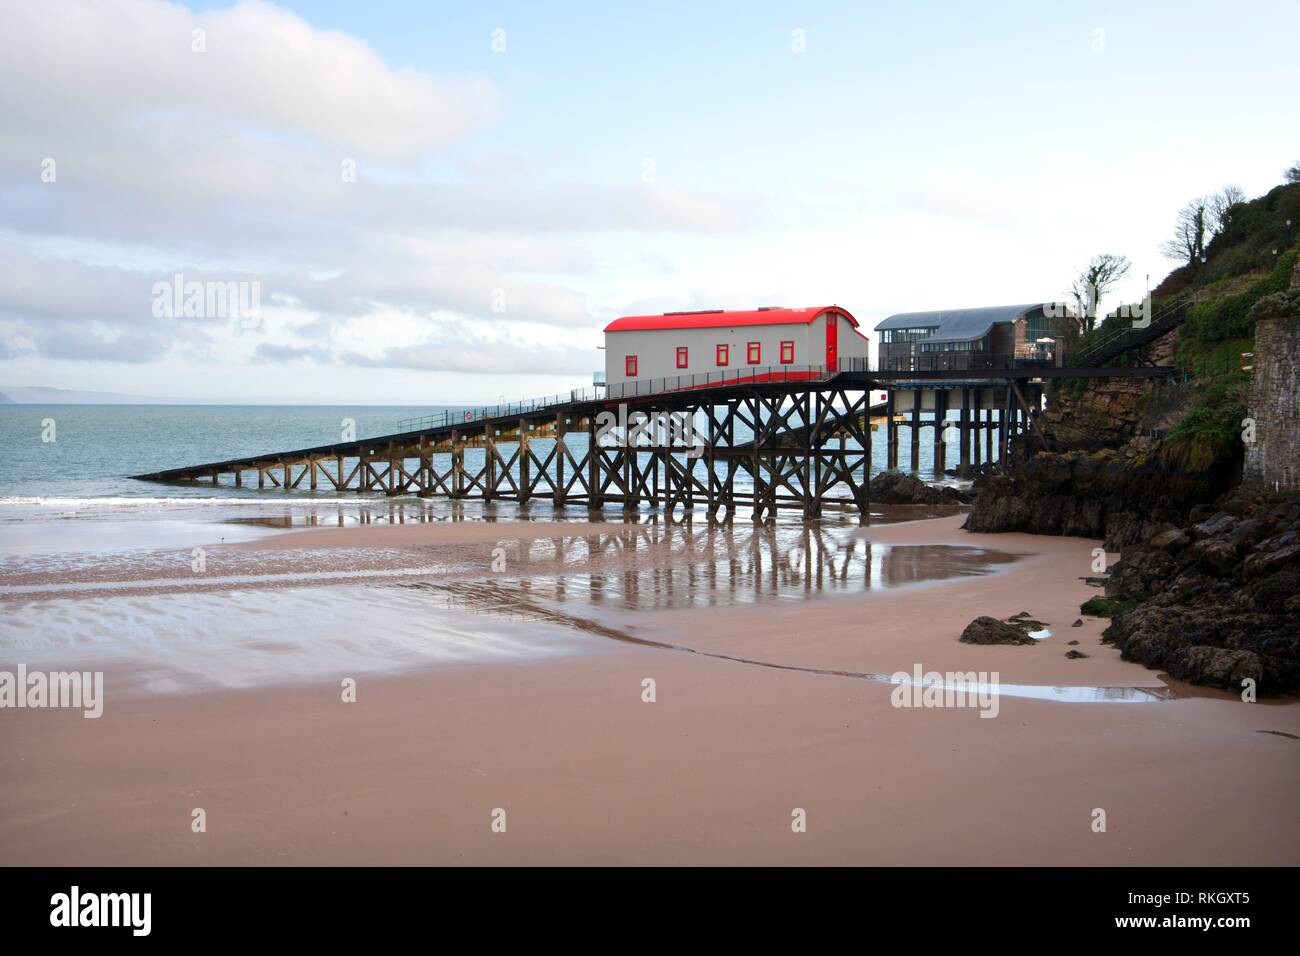 UK, Wales, Pembrokeshire, old and new Lifeboat Stations at Tenby. Stock Photo